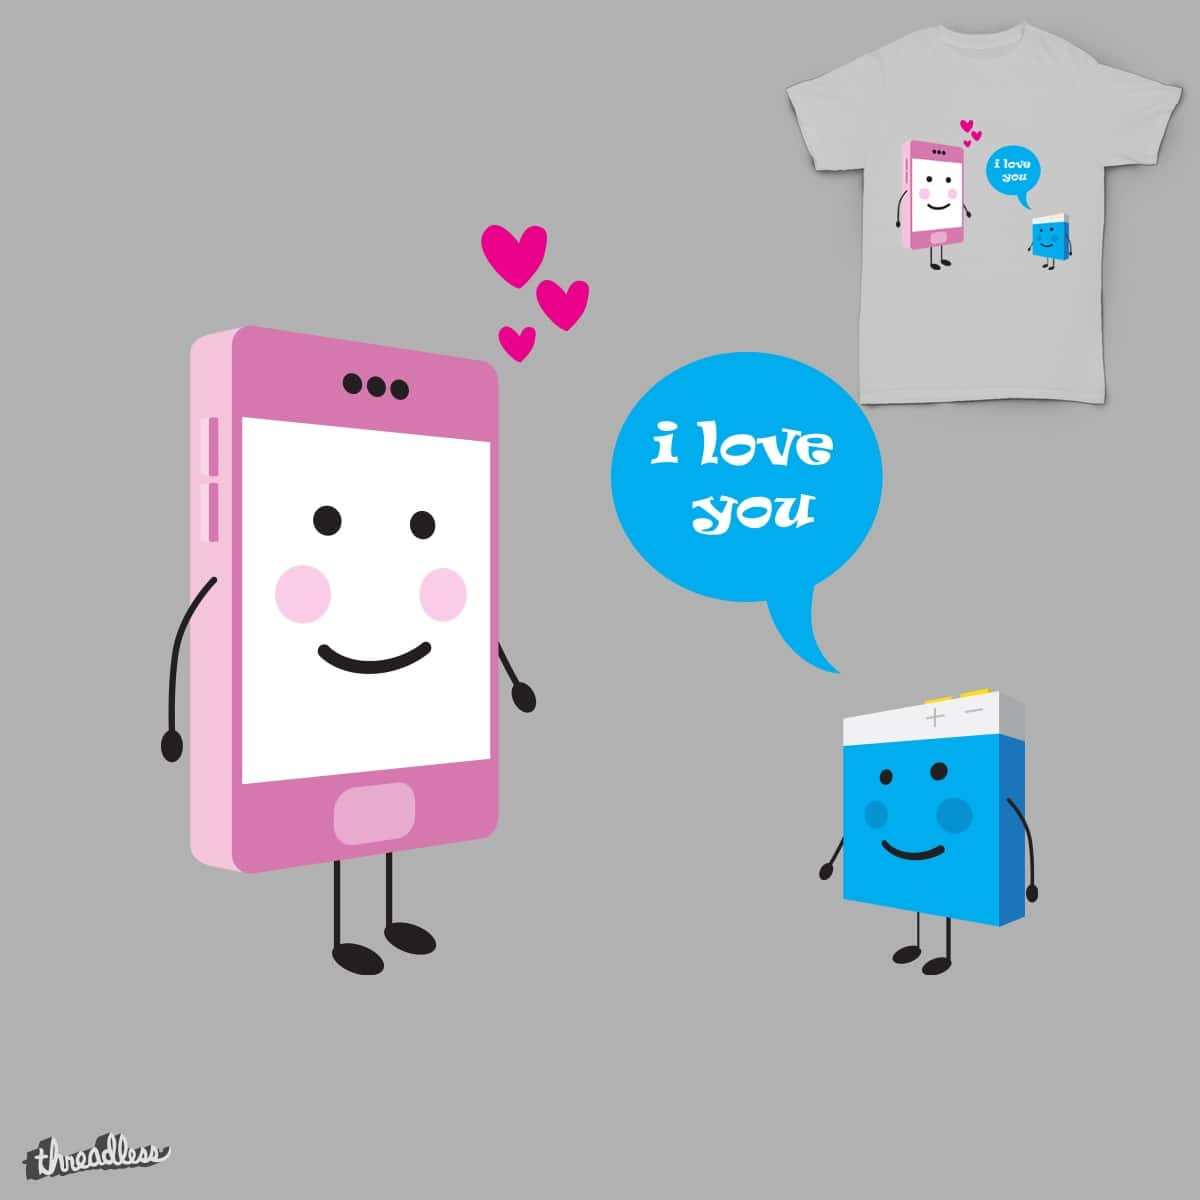 i love you by bbatzolboo on Threadless